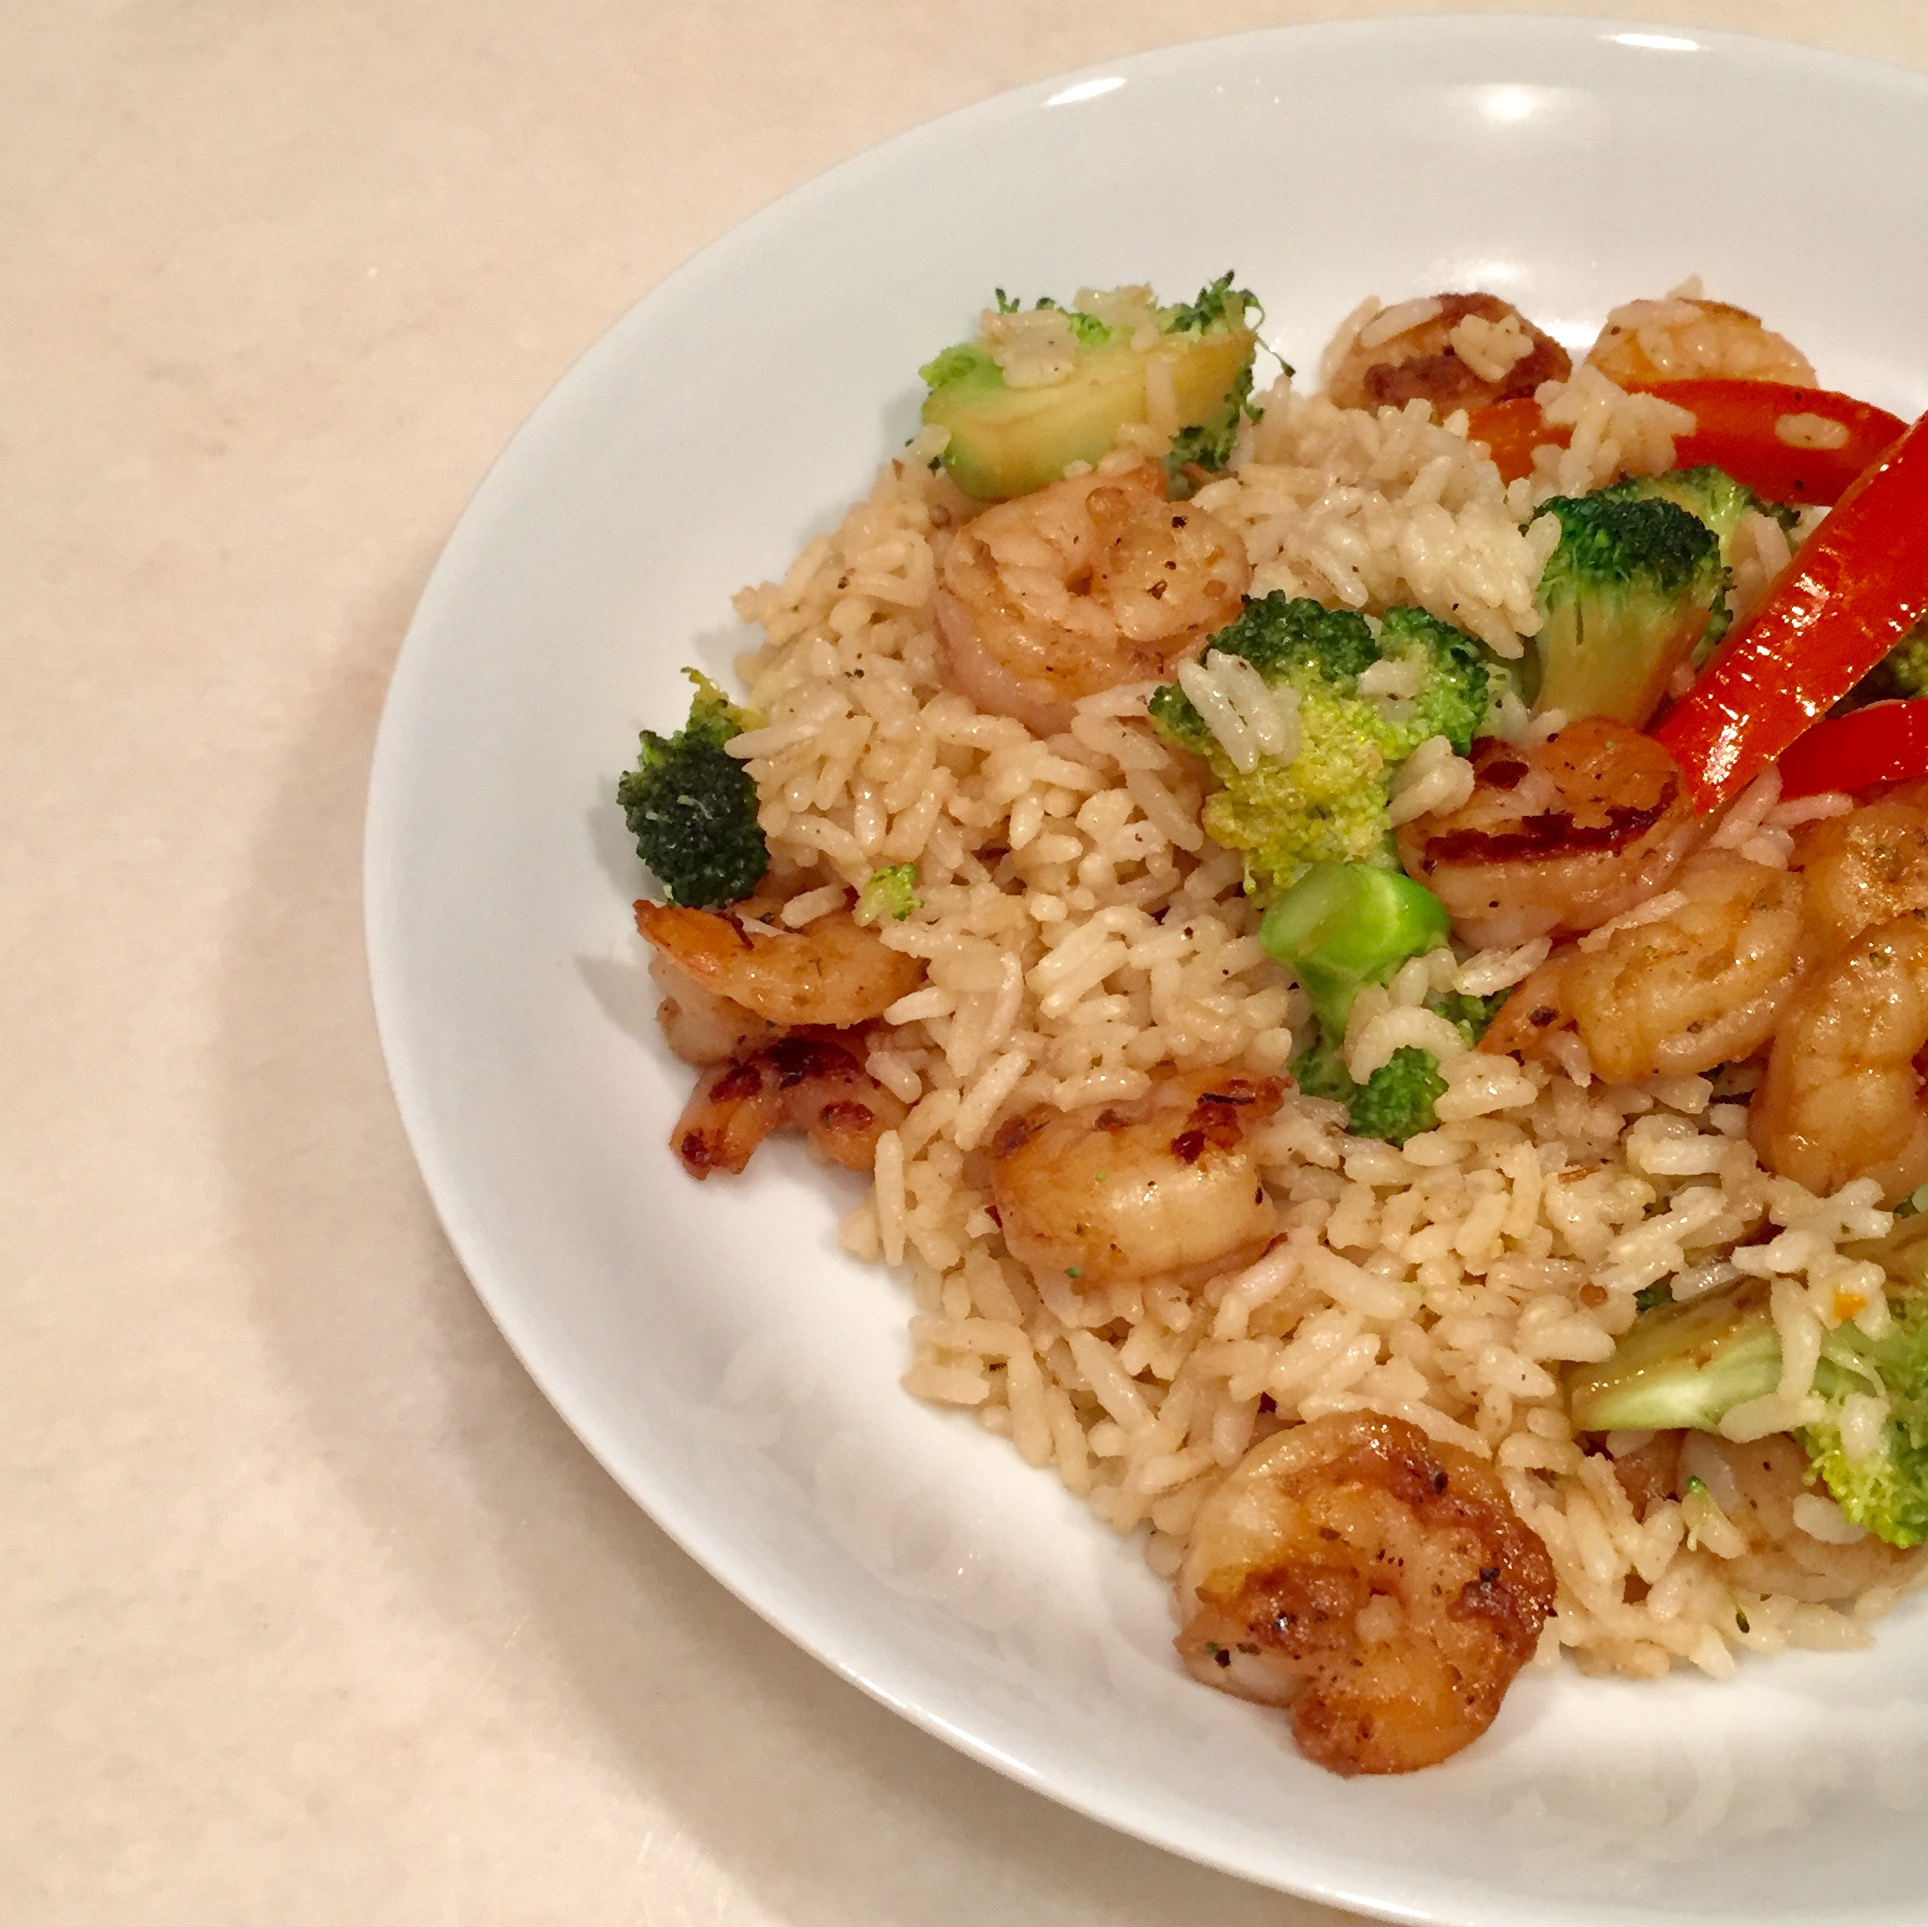 Quick & Easy Week Night Dinner - Shrimp Fried Rice, Dallas Nutritional Counseling #dallasnutritionalcounseling #balancedeating #homecooking #quickrecipes #easyrecipe #weeknightrecipe #carbfatpro #quickeasyrecipe